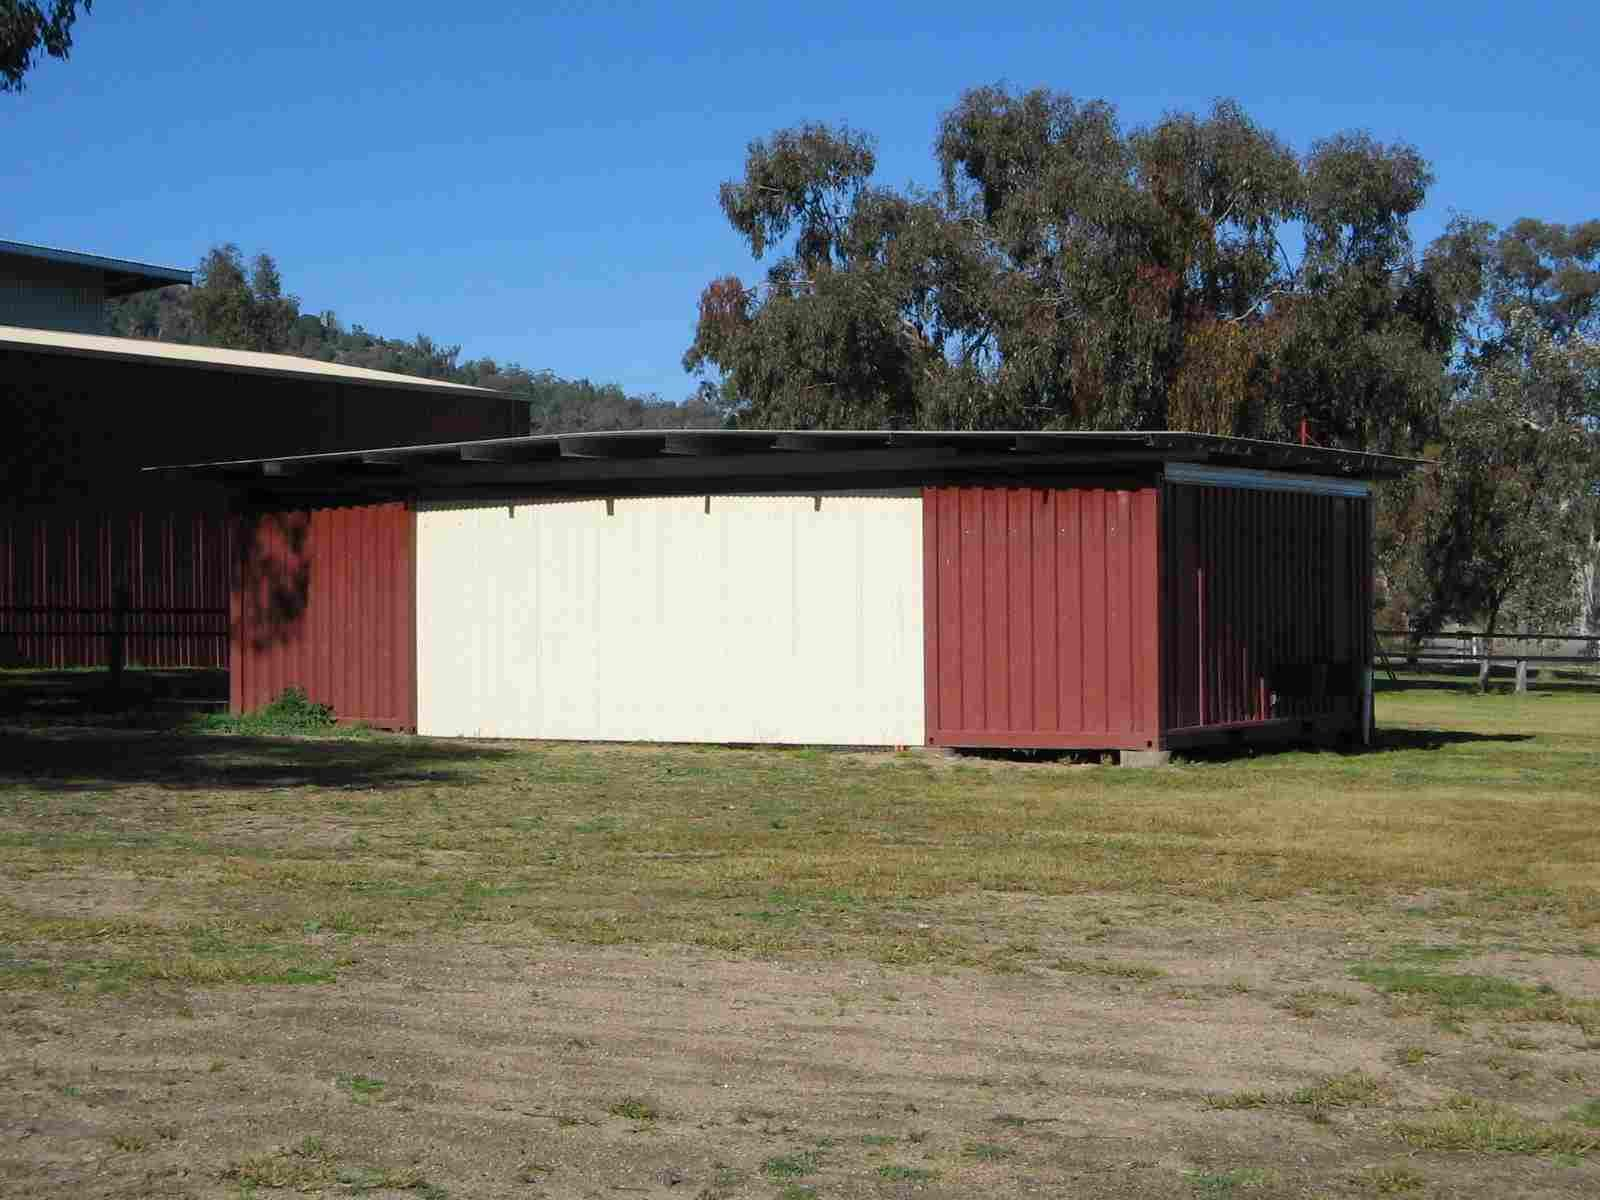 10 Shipping Container Buildings For Homes And Outbuildings Builddirect Green Blog Shipping Container Buildings Container Buildings Shipping Container Sheds